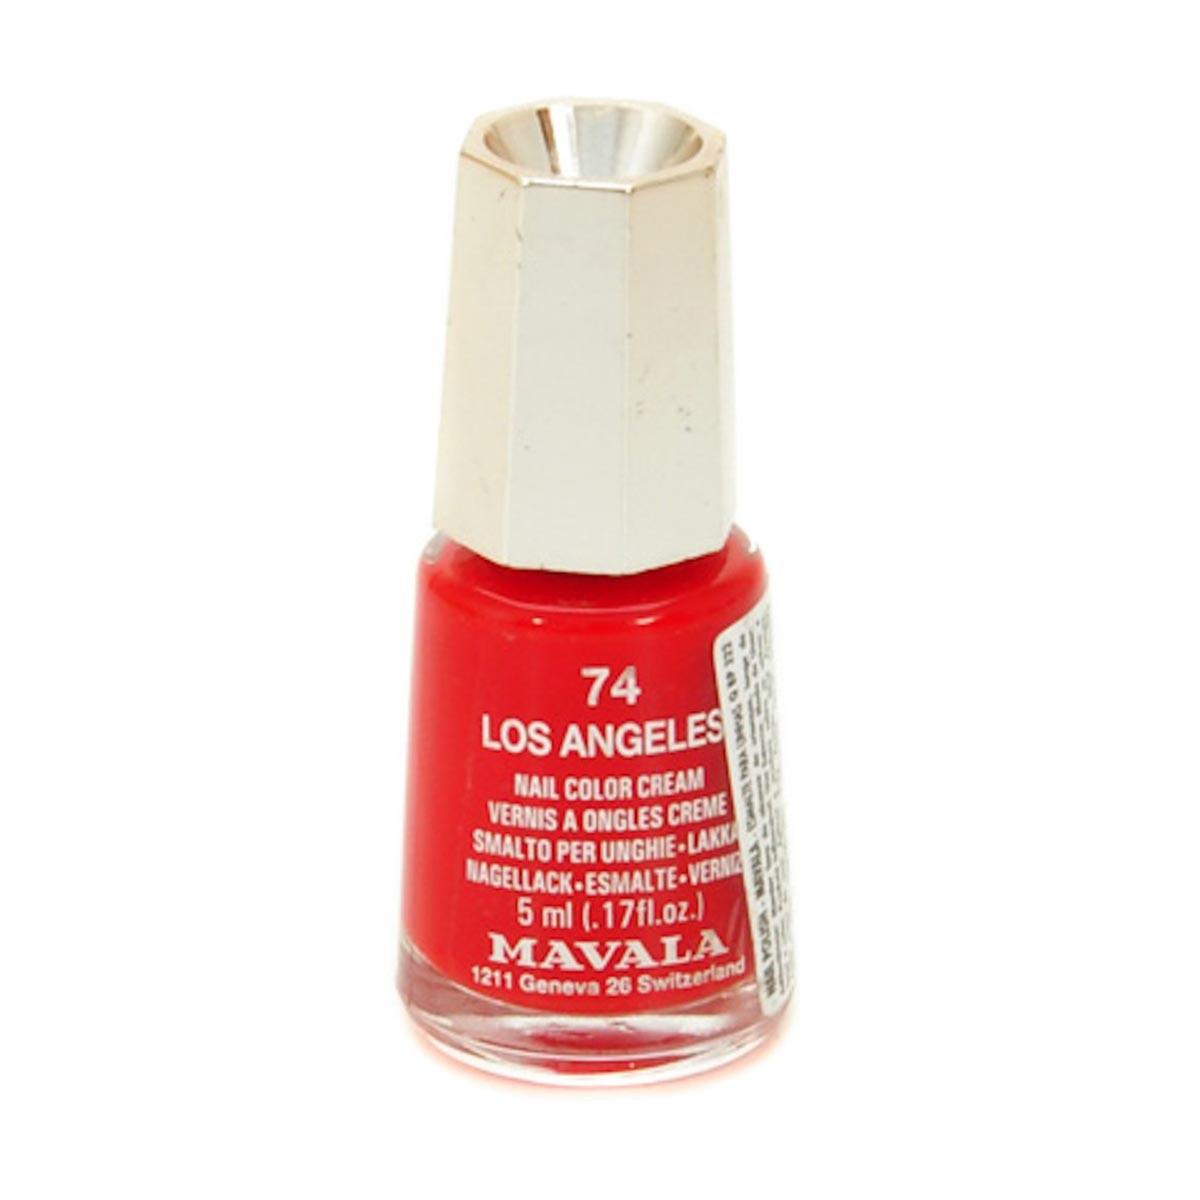 Mavala Fragrances Nail Lacquer 74 Los Angeles Buy And Offers On Dressinn